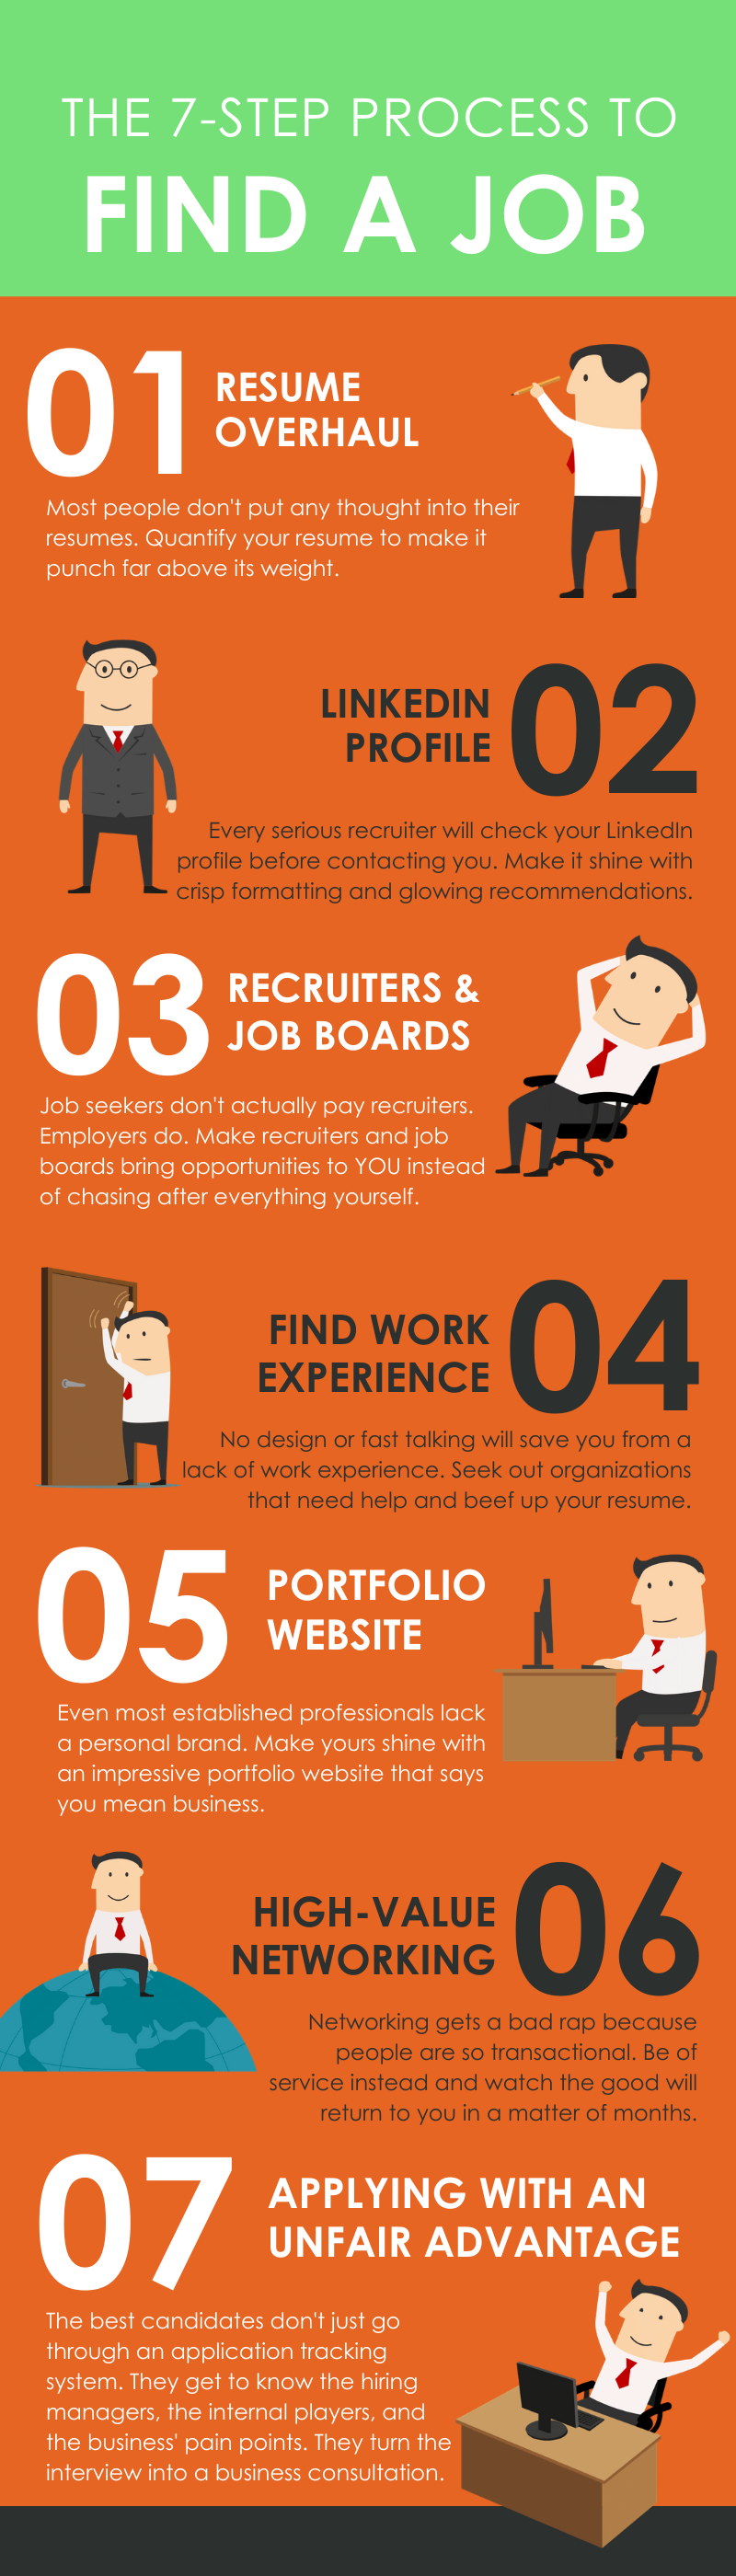 Infographic showing 7-step process to find a job after college.